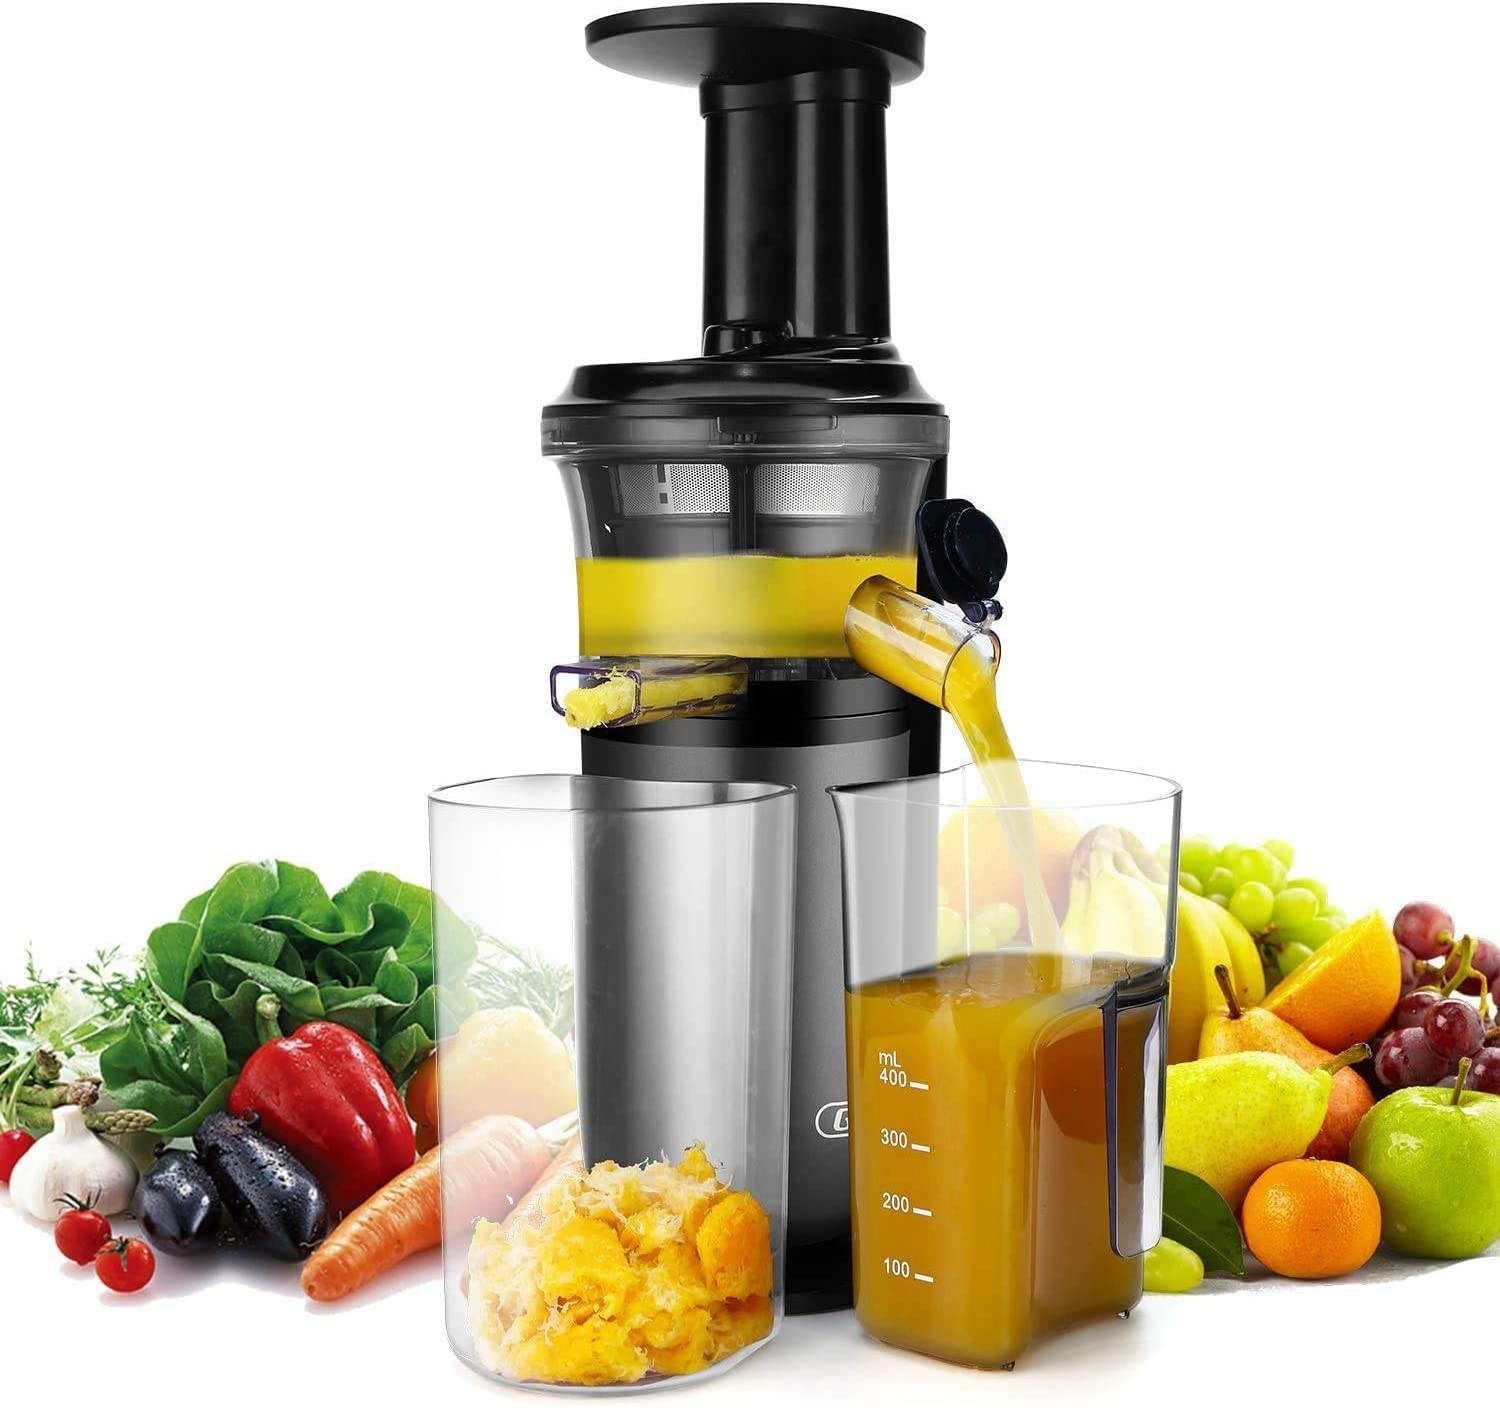 Slow Masticating Juicer with Slow Press Masticating Squeezer Technology for Fruits, Vegetables and Herbs, Slow Juicer with Compact Design and easy to